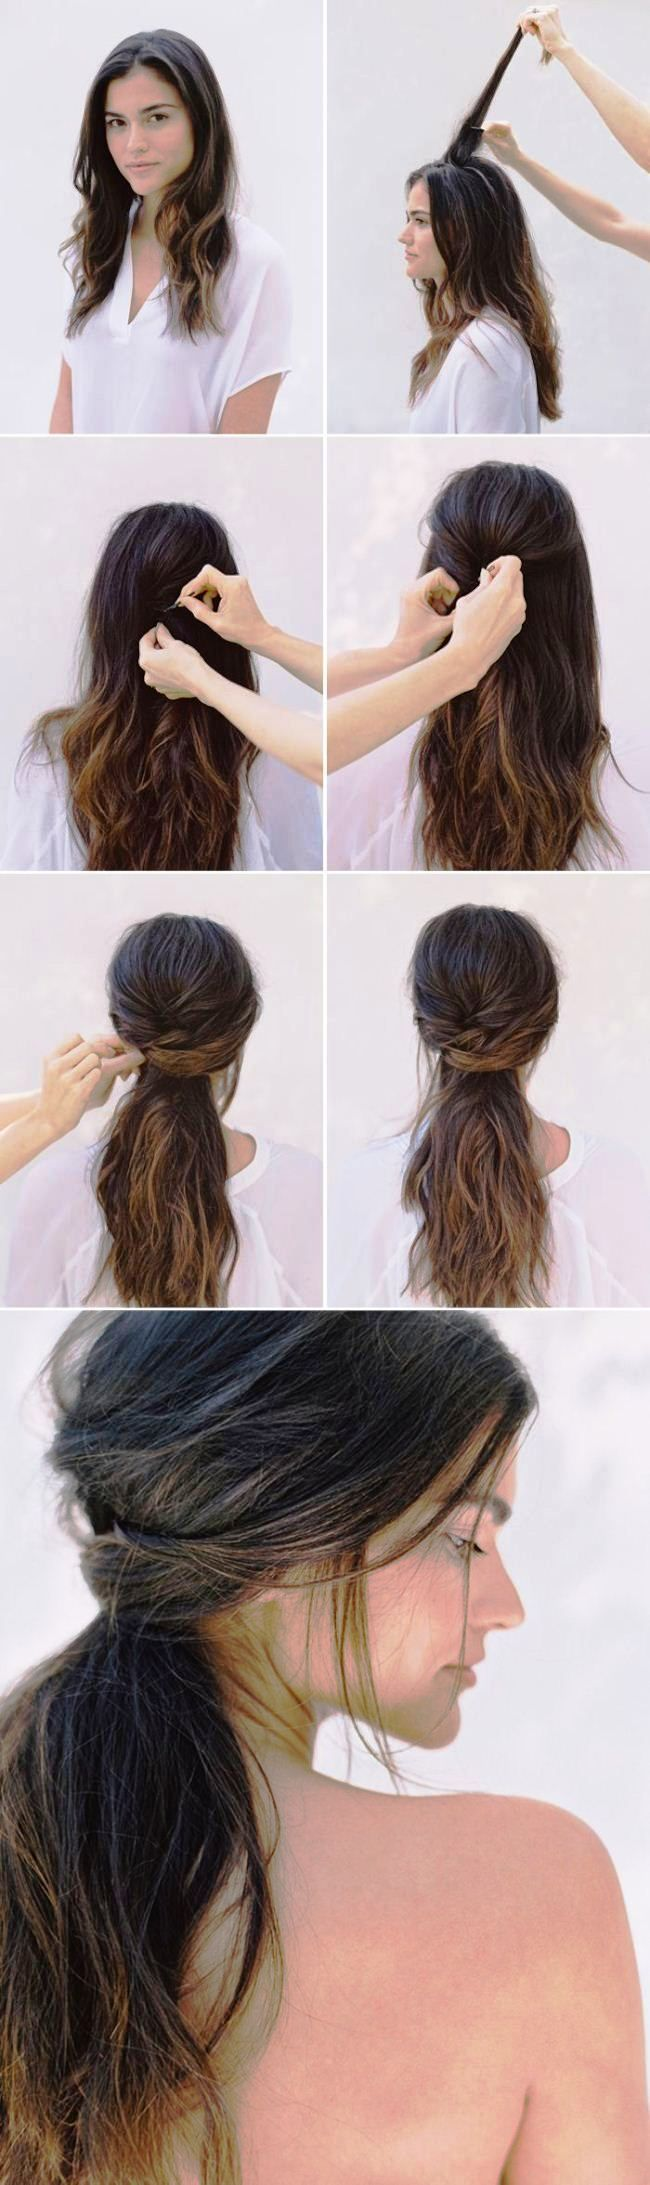 Party Hairstyles Interesting 237 Best Party Hairstyles For Girl Images On Pinterest  Hairstyle